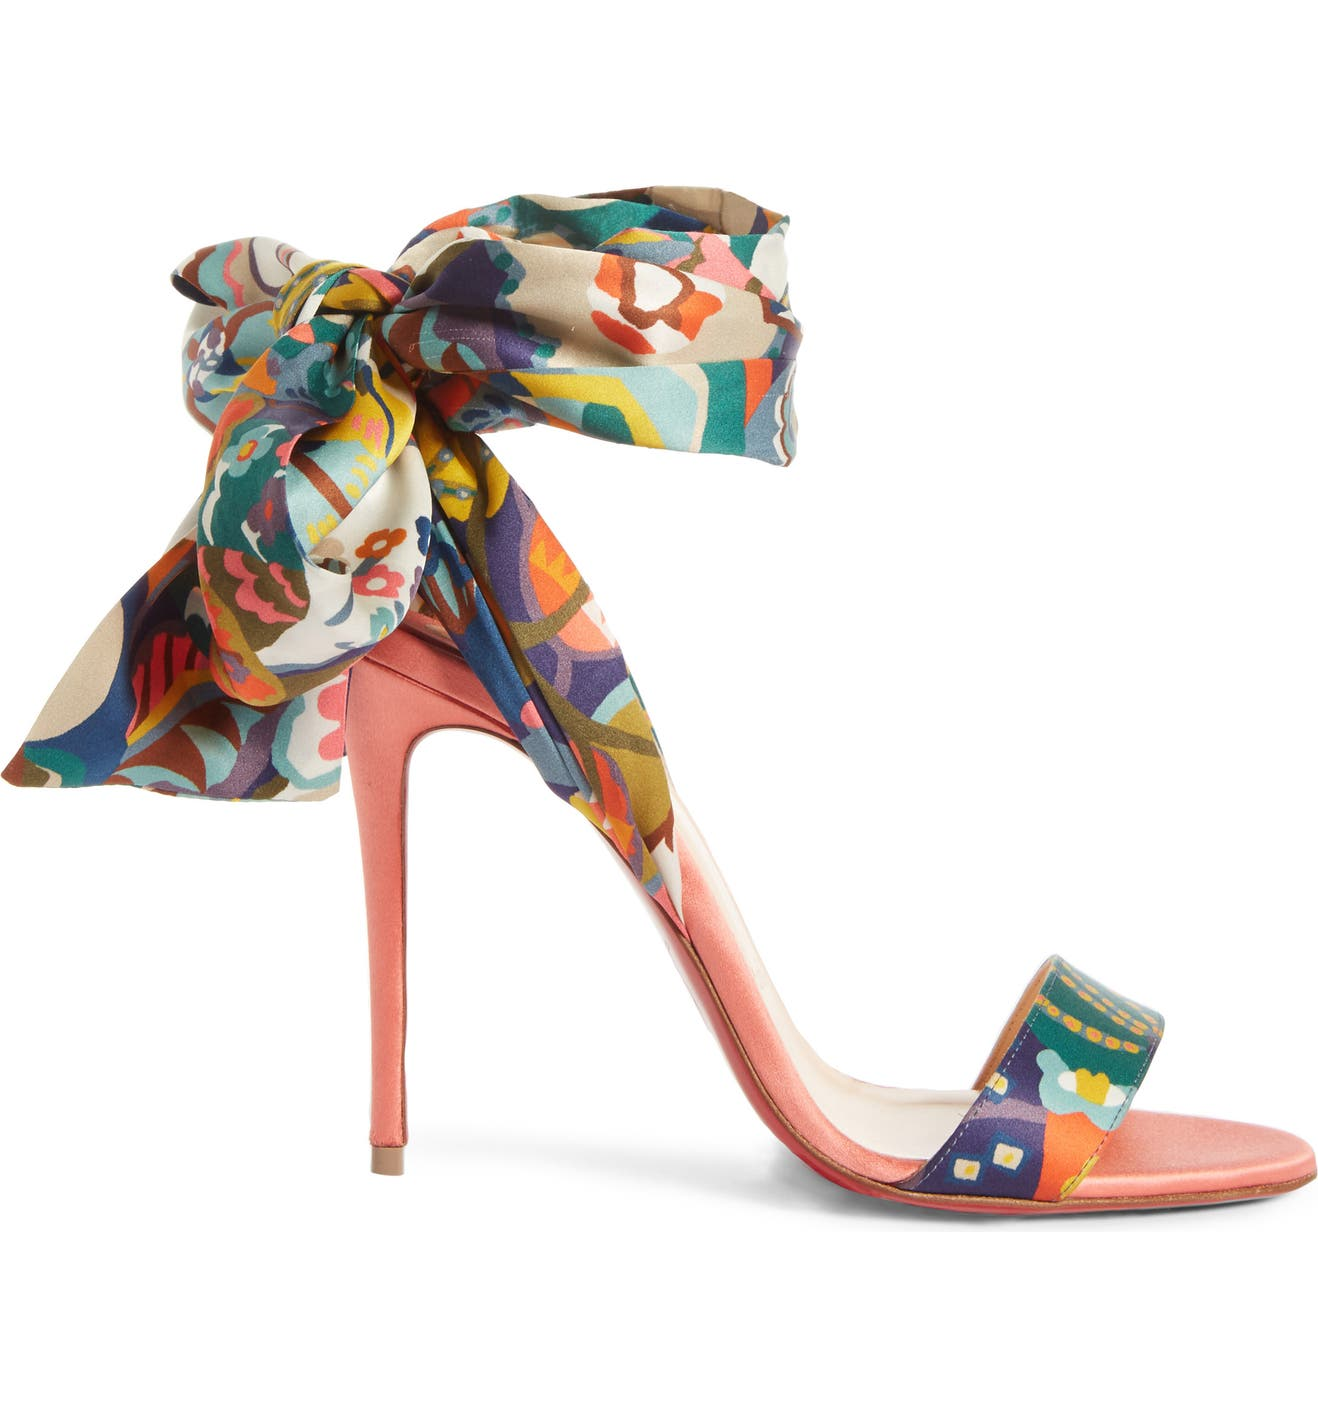 newest collection 3b3b6 a4a0b Sandale du Desert Ankle Wrap Sandal